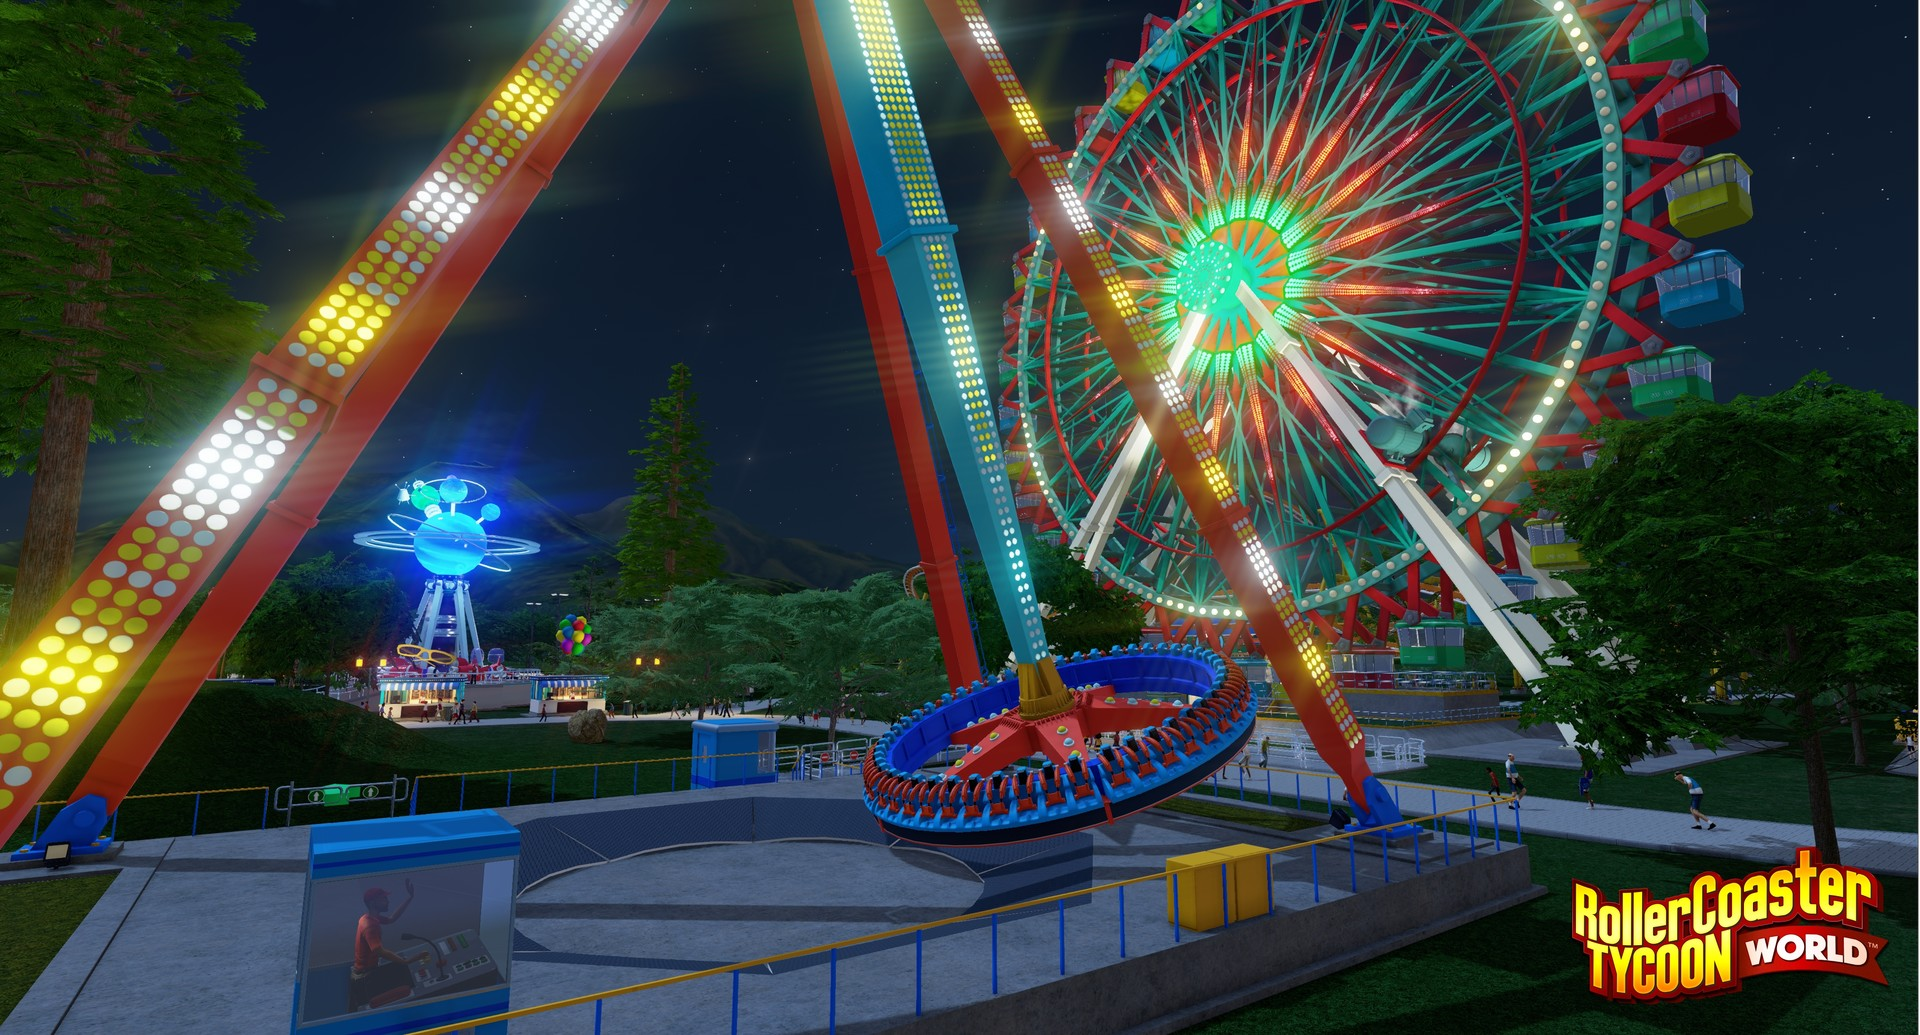 RollerCoaster Tycoon World™: Deluxe Edition